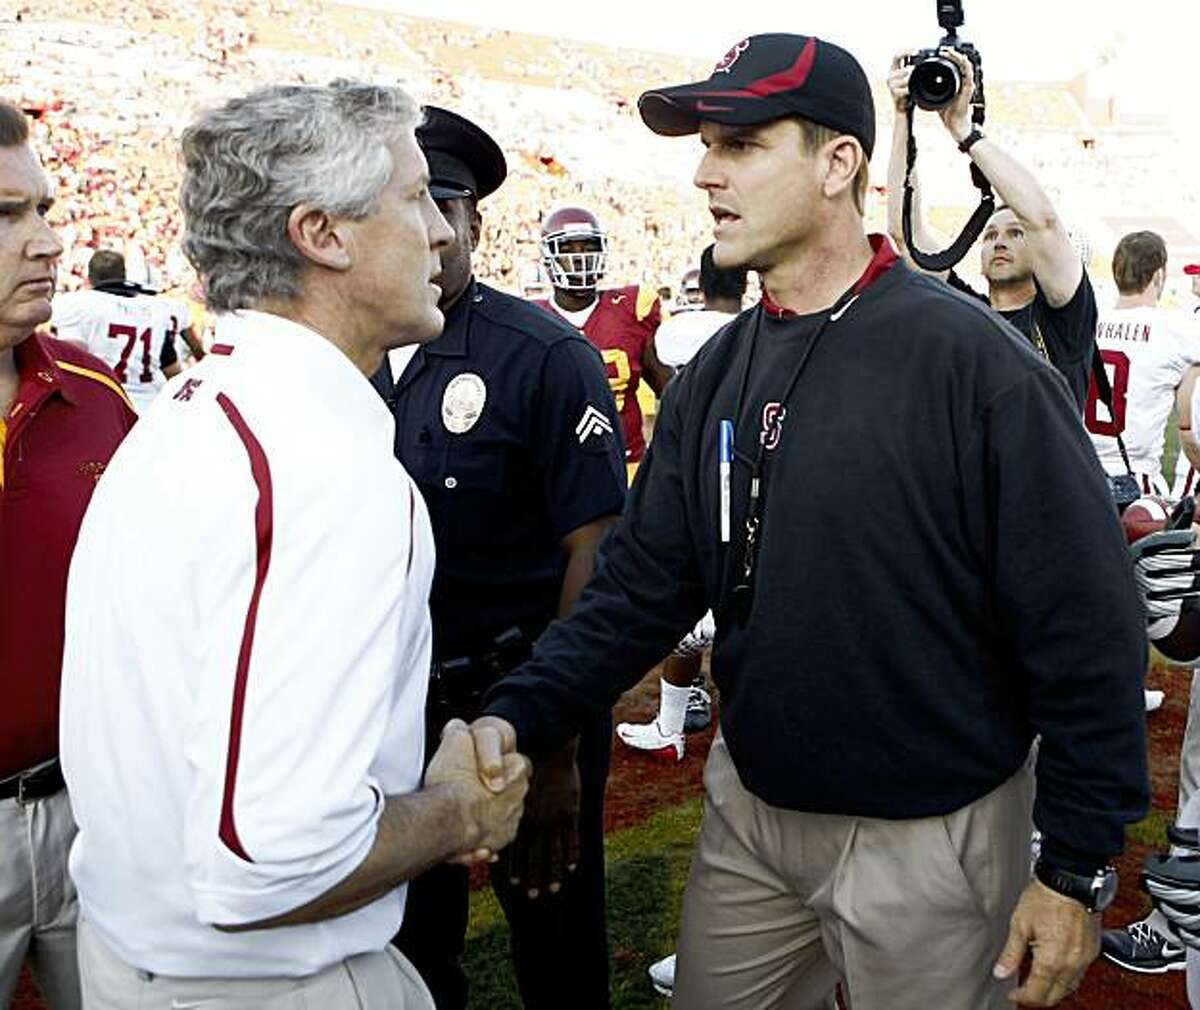 Southern California head coach Pete Carroll, left, and Stanford head coach Jim Harbaugh greet each other after a NCAA college football game in Los Angeles on Saturday, Nov. 14, 2009. Stanford won 55-21. (AP Photo/Matt Sayles)